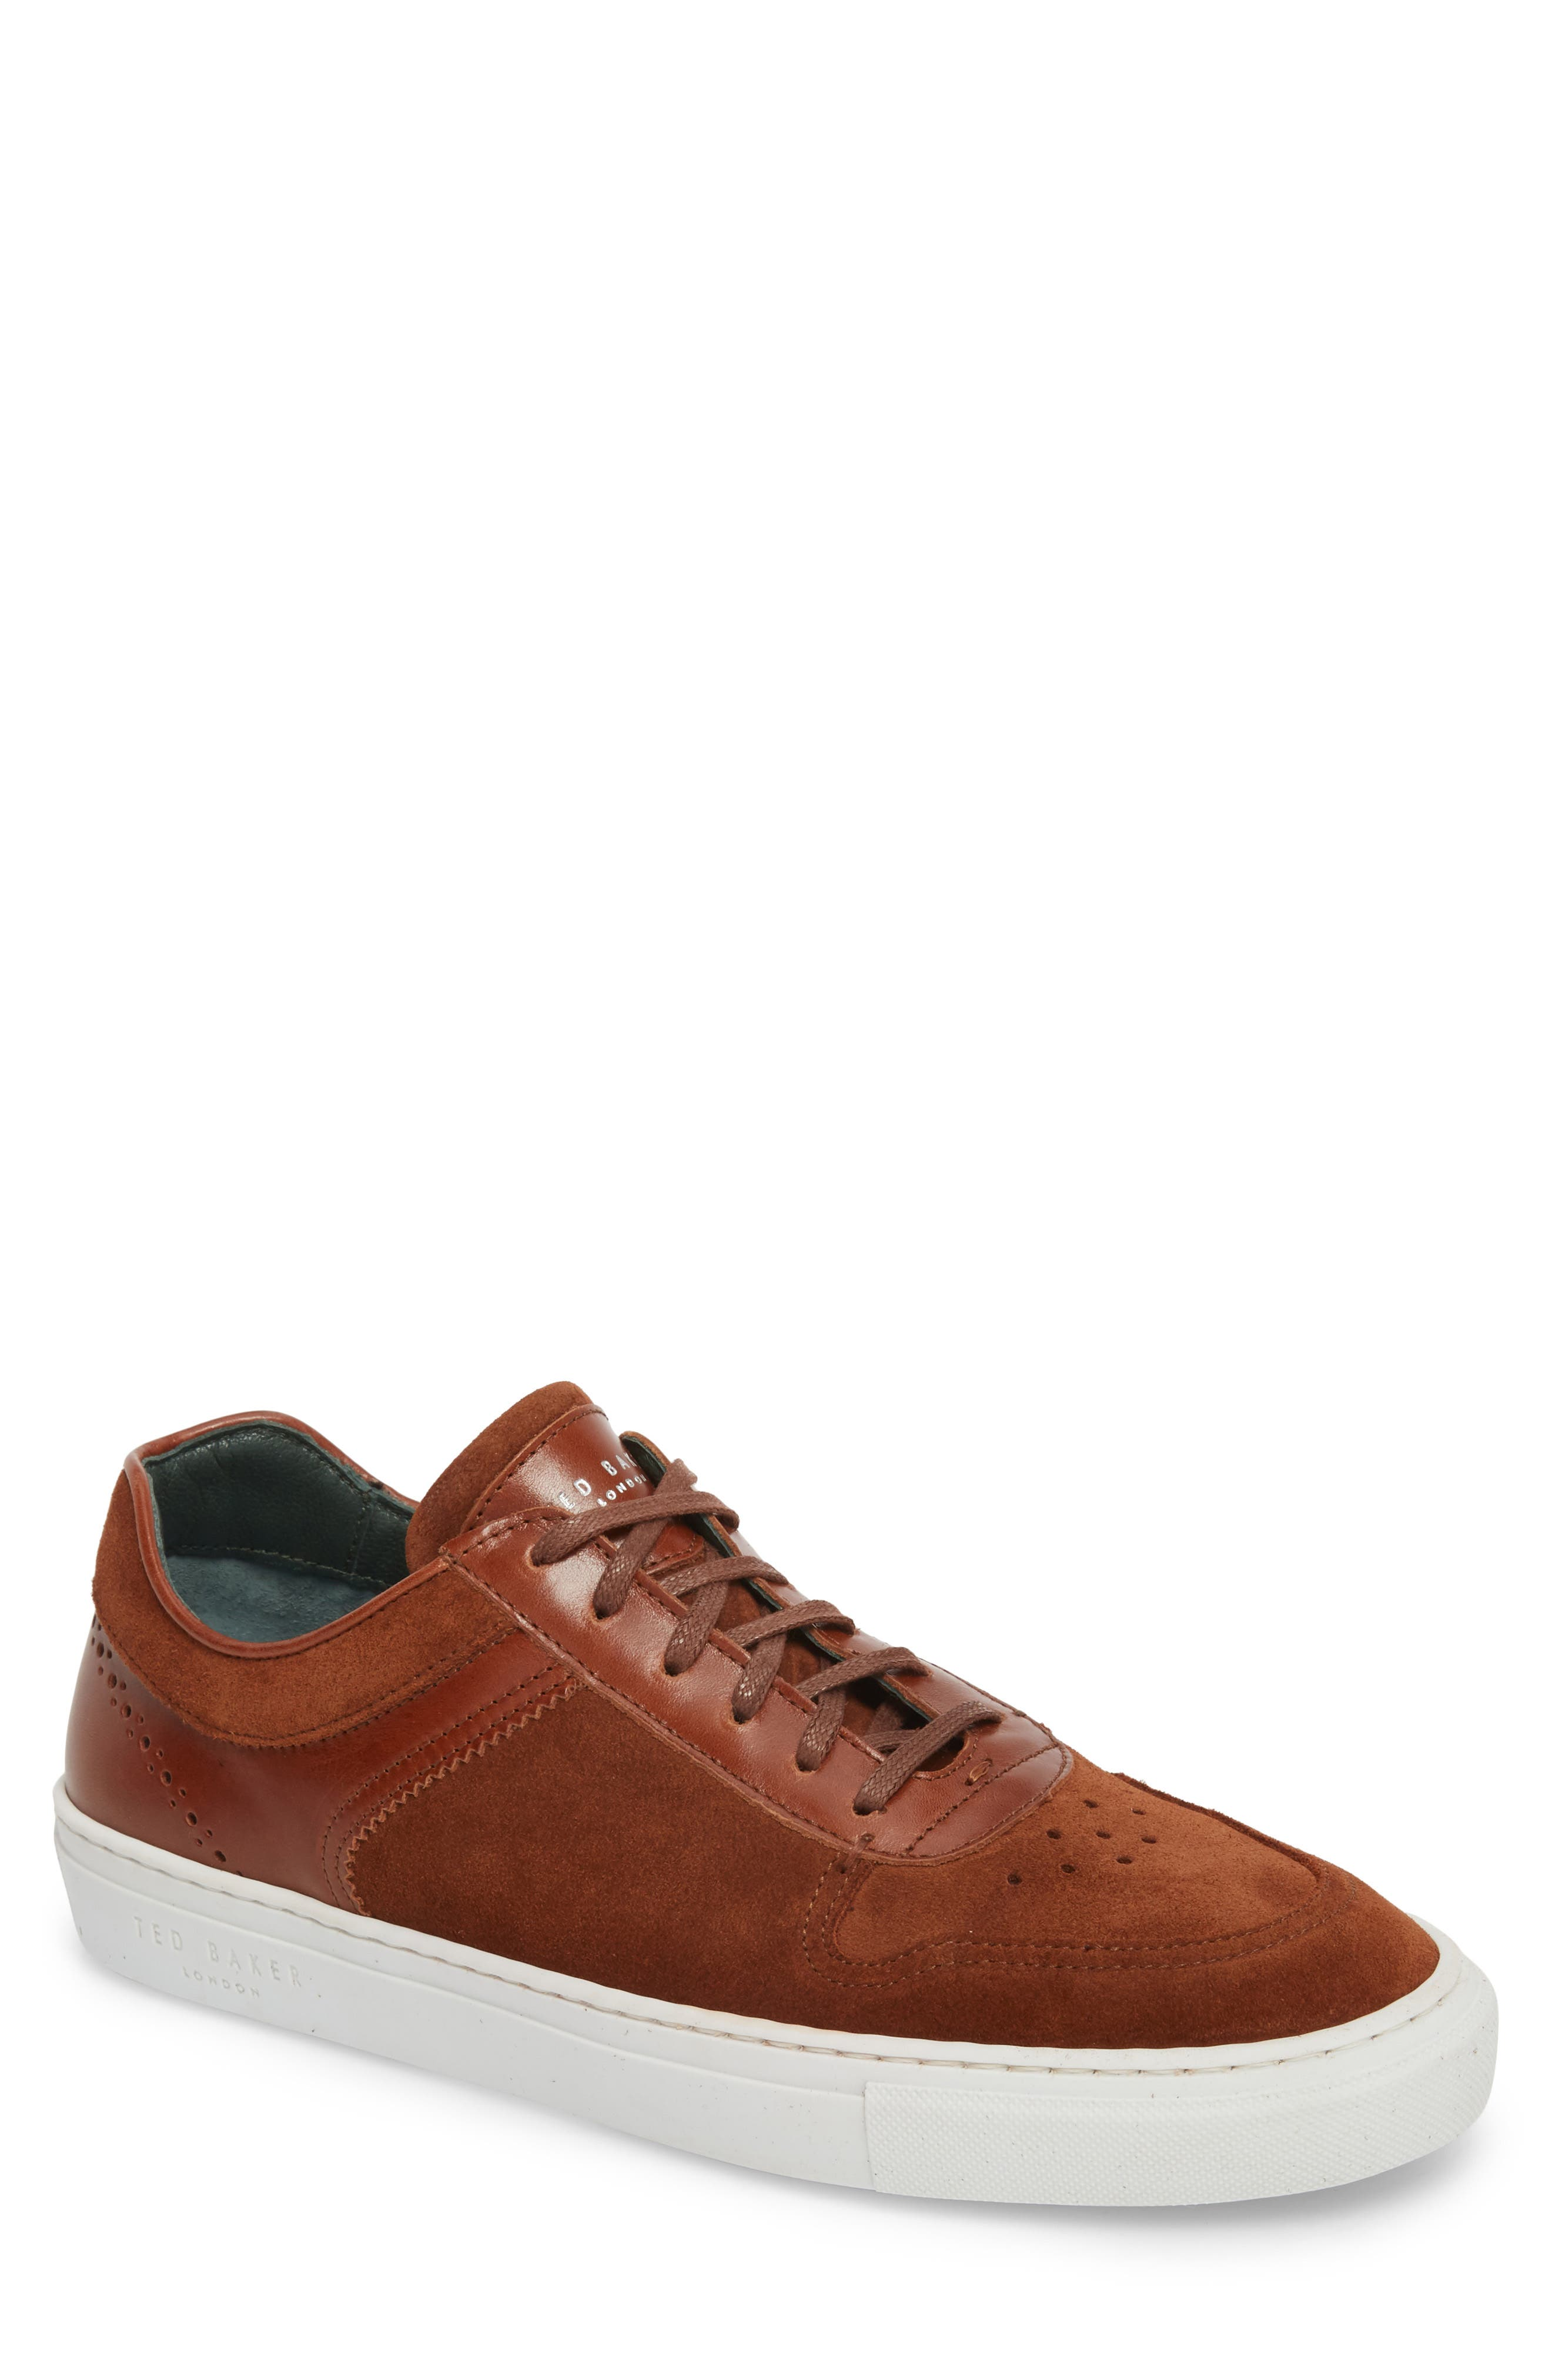 Burall Sneaker,                             Main thumbnail 1, color,                             Dark Tan Suede